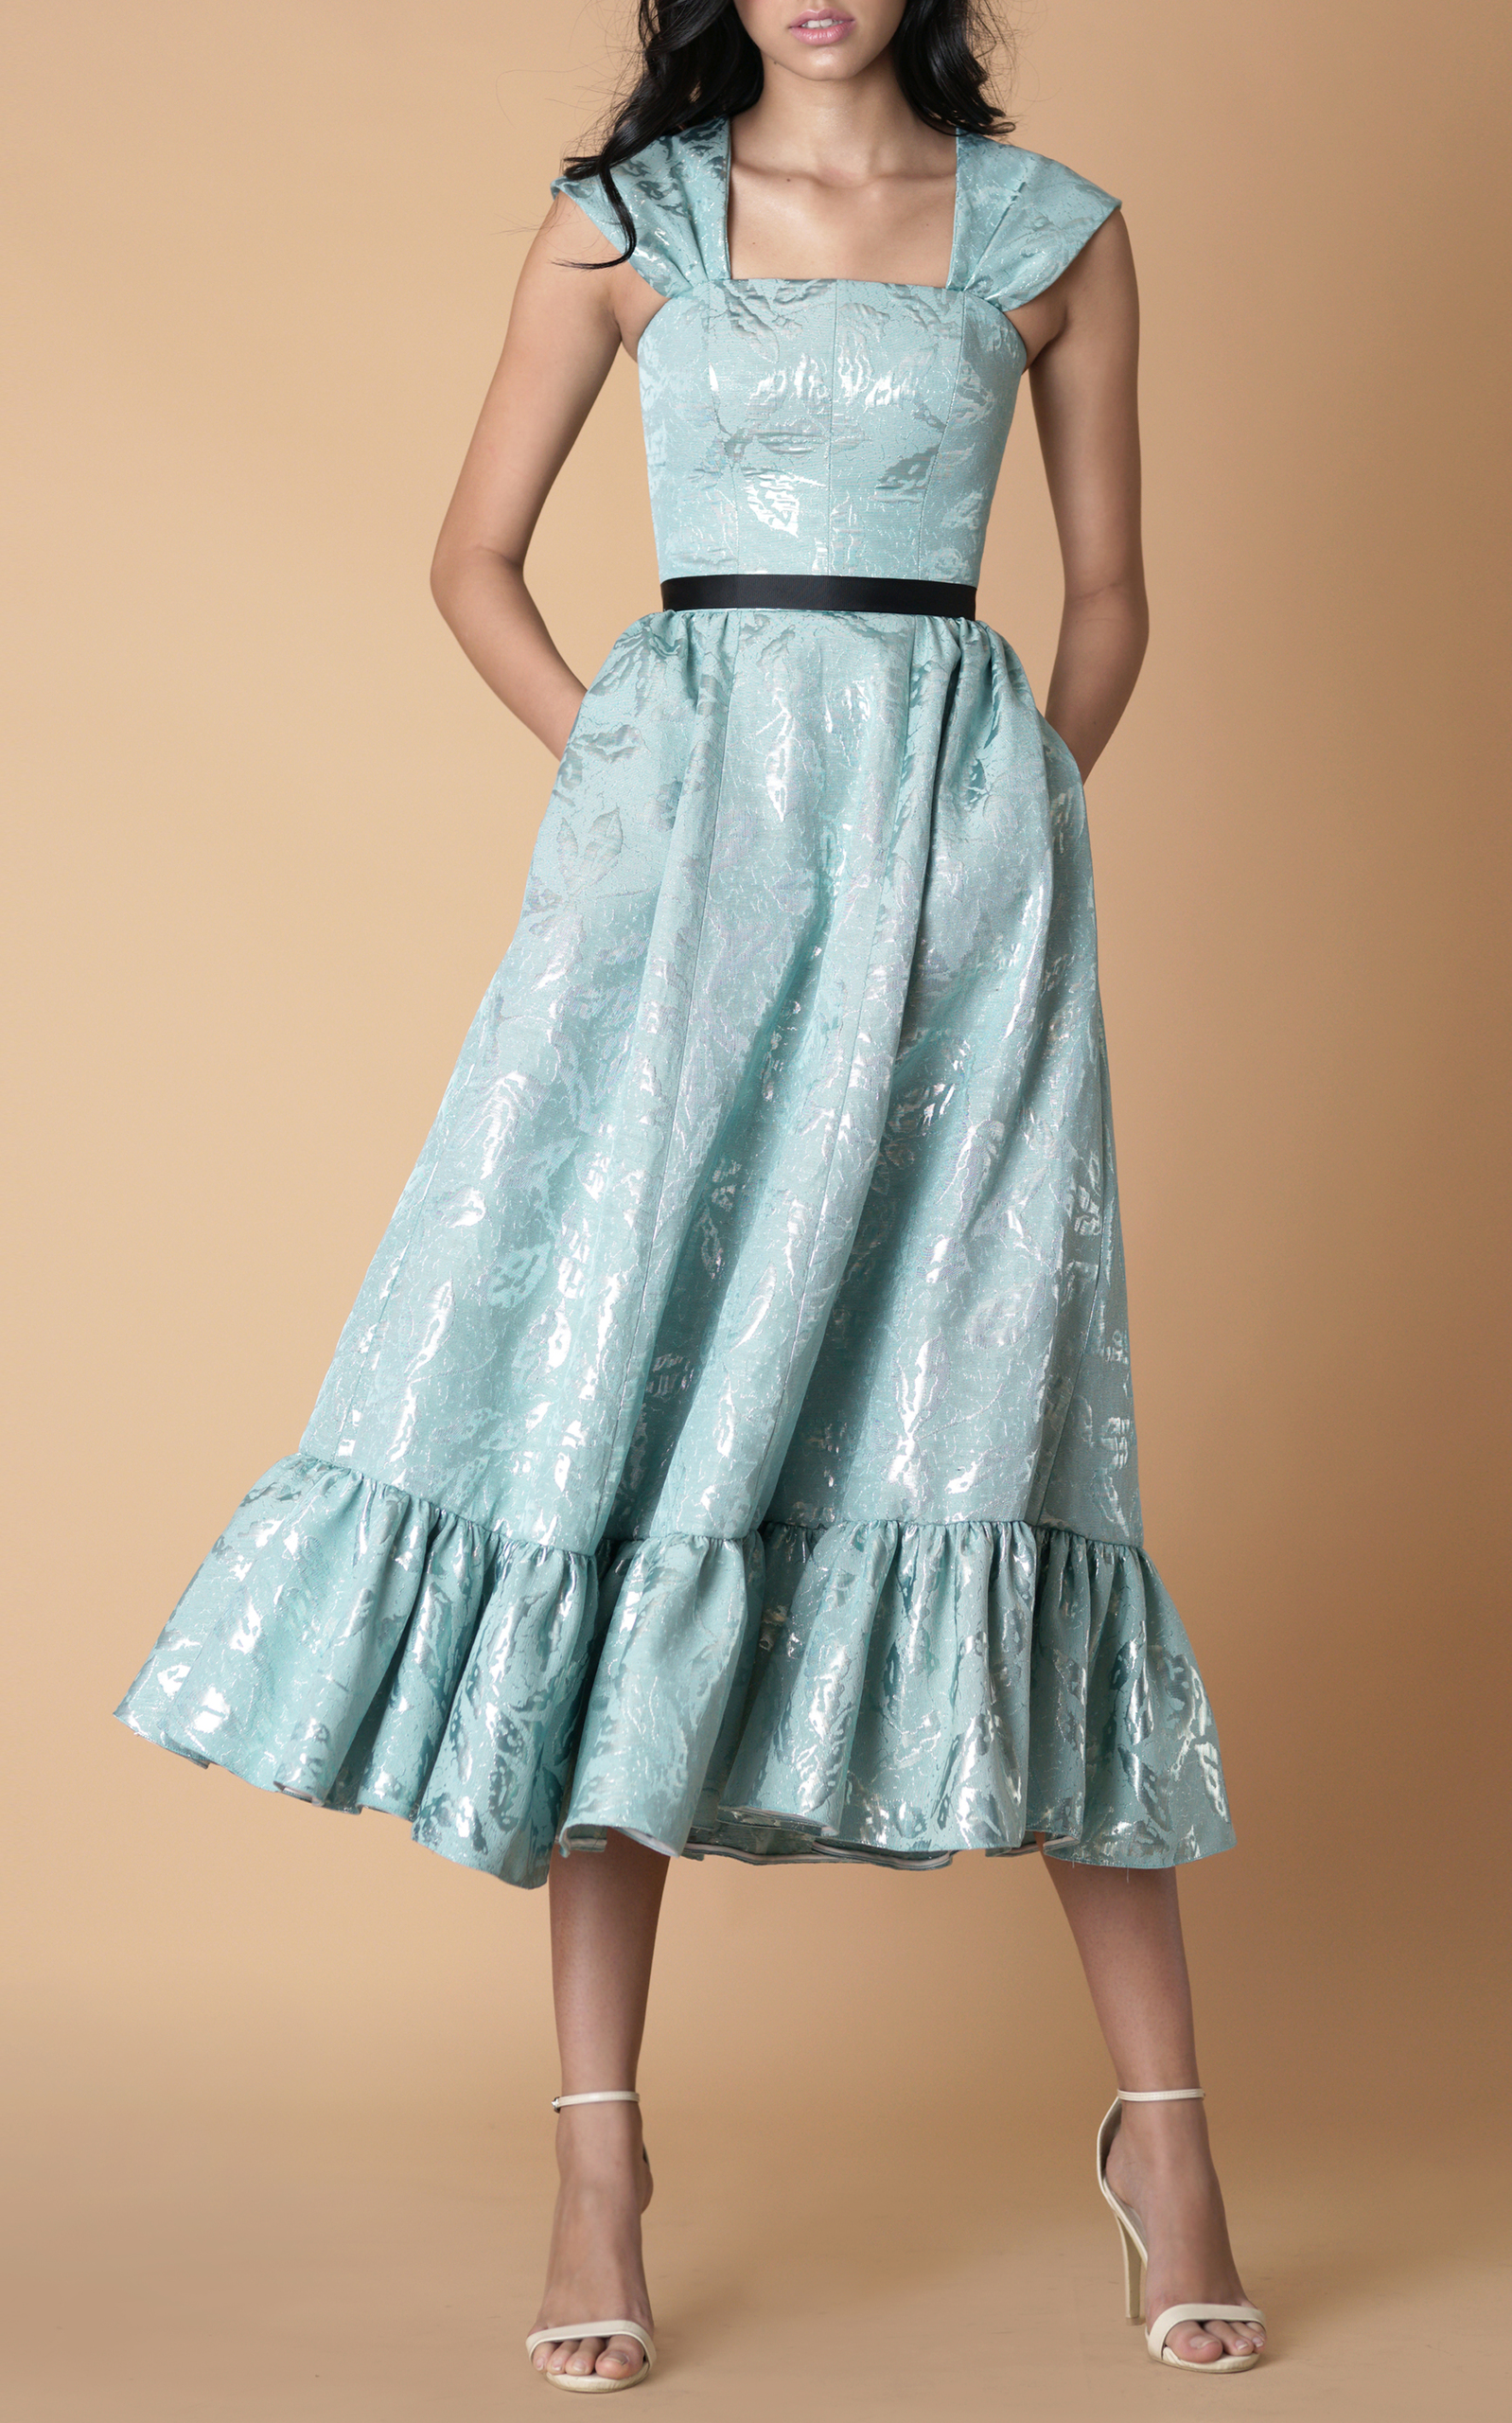 Nice Dress For Work Christmas Party Contemporary - Wedding Ideas ...